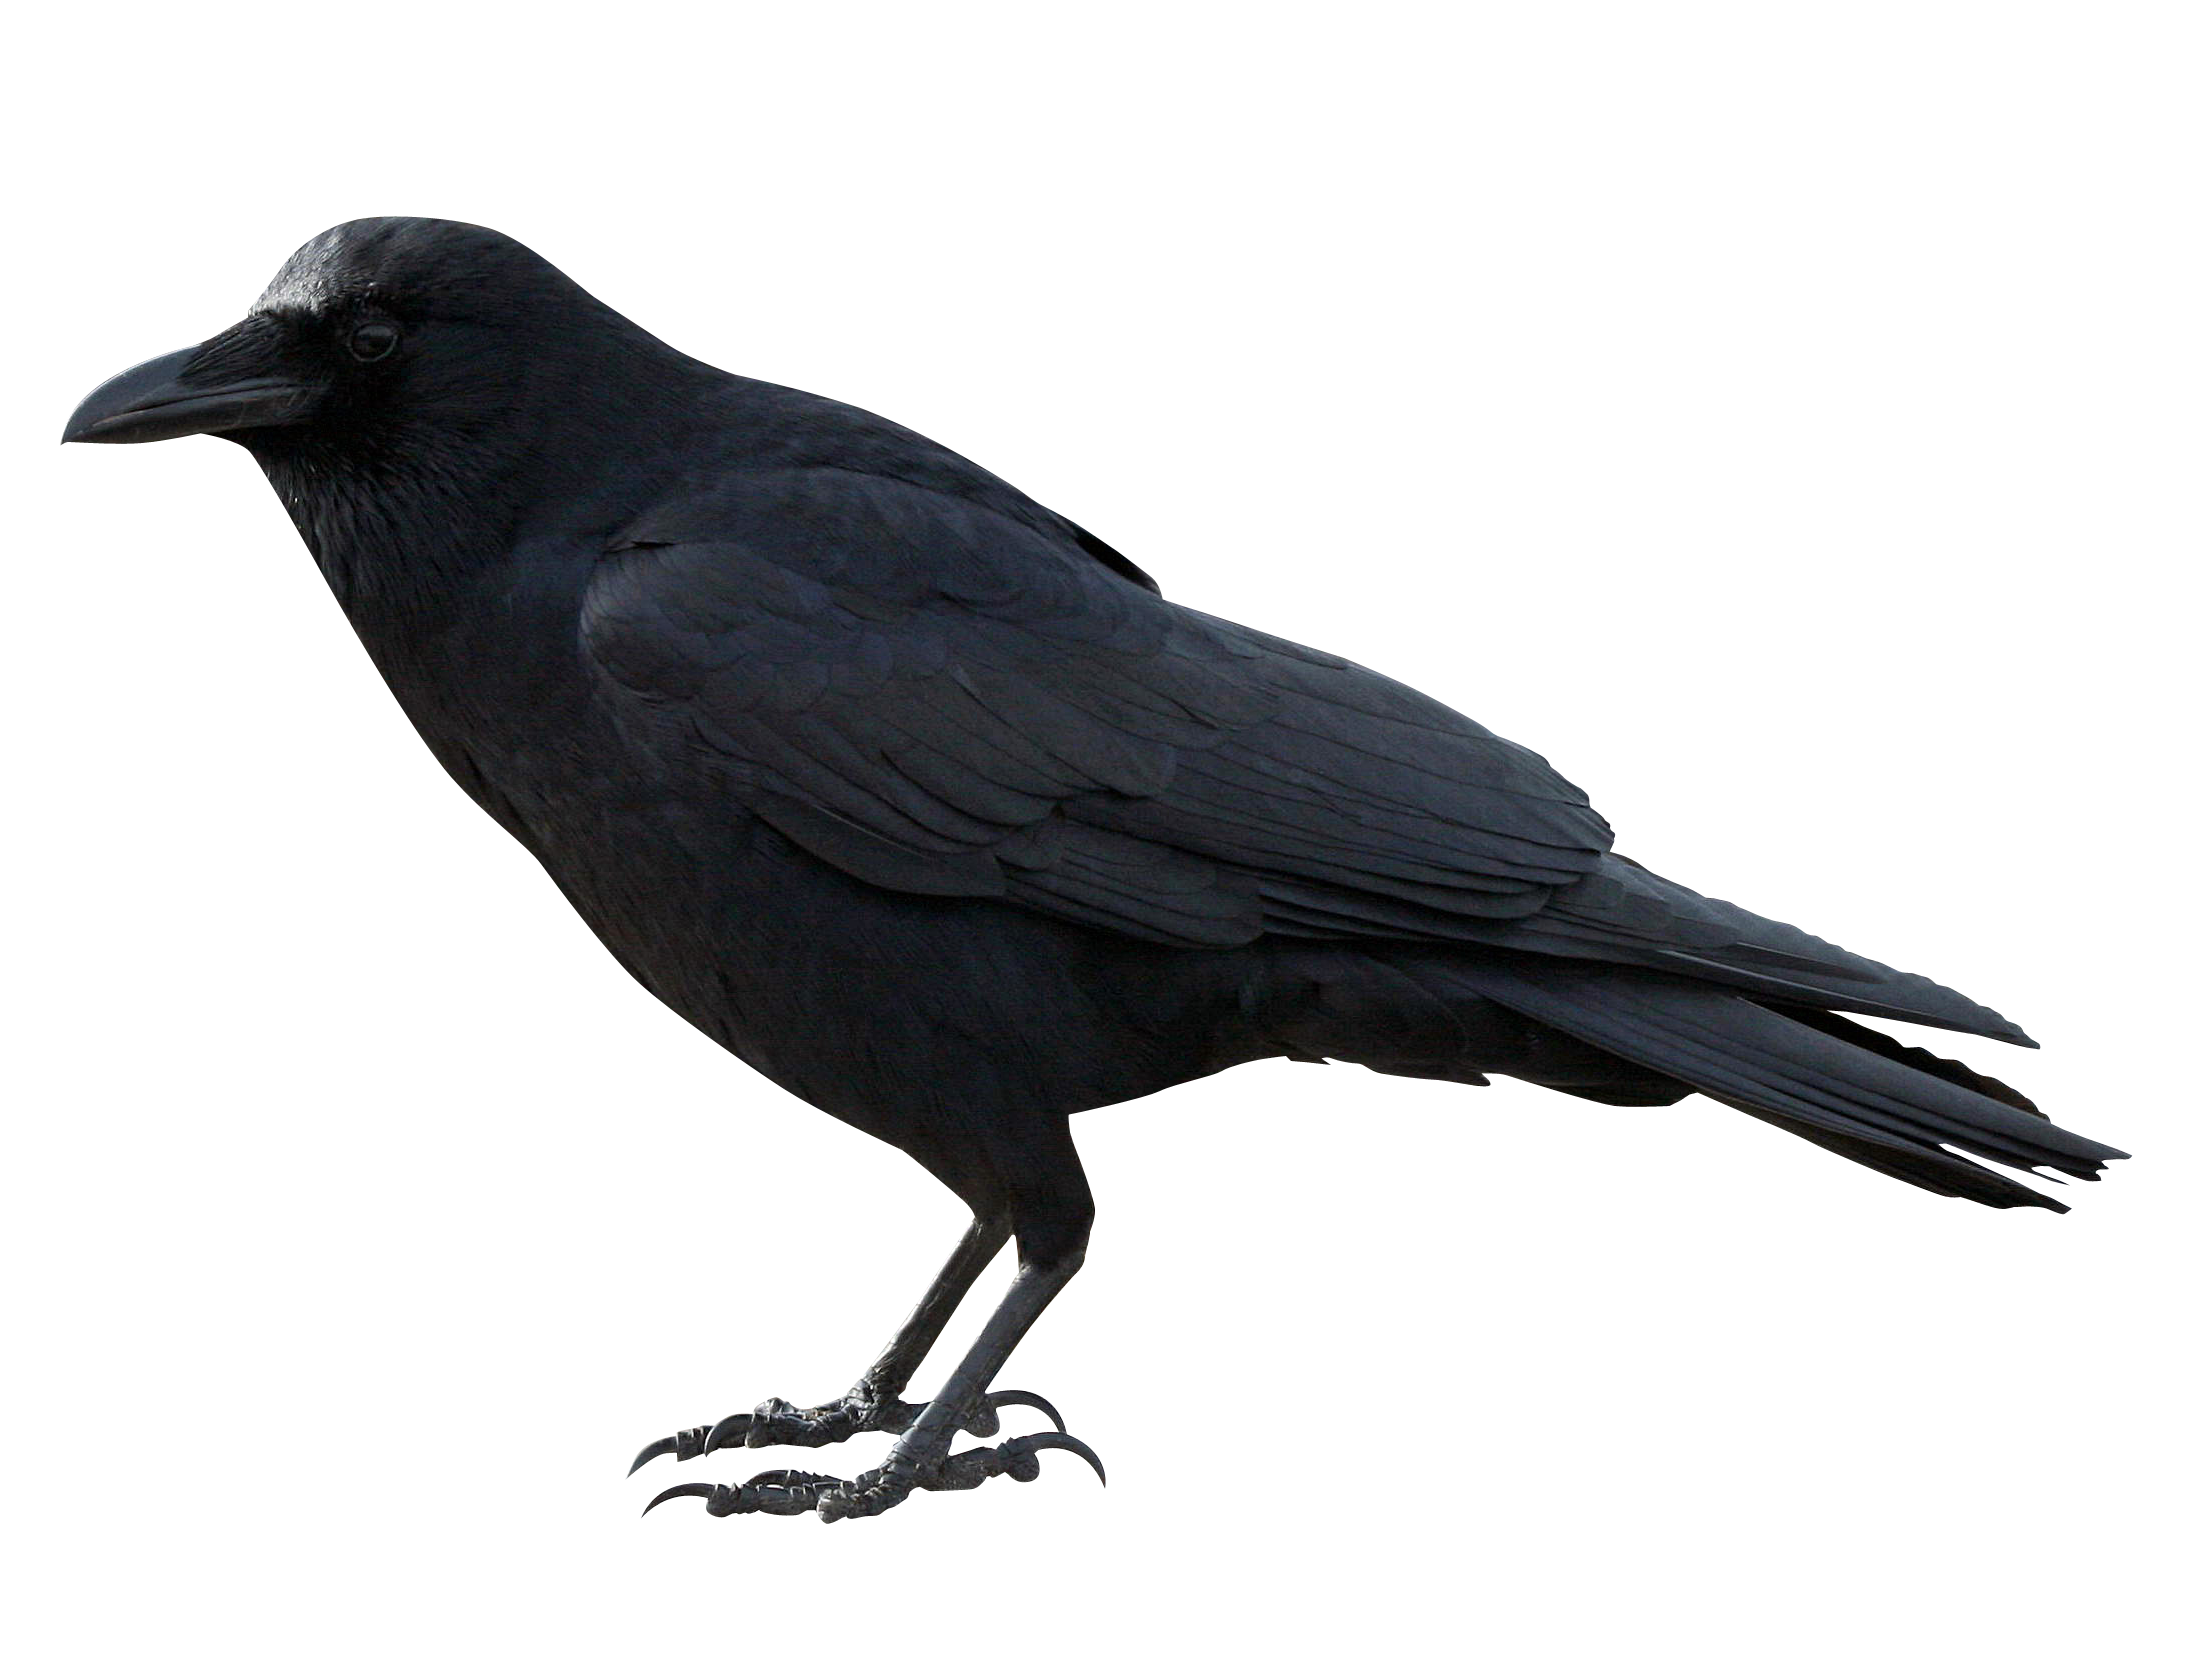 Raven clipart png. American crow common clip